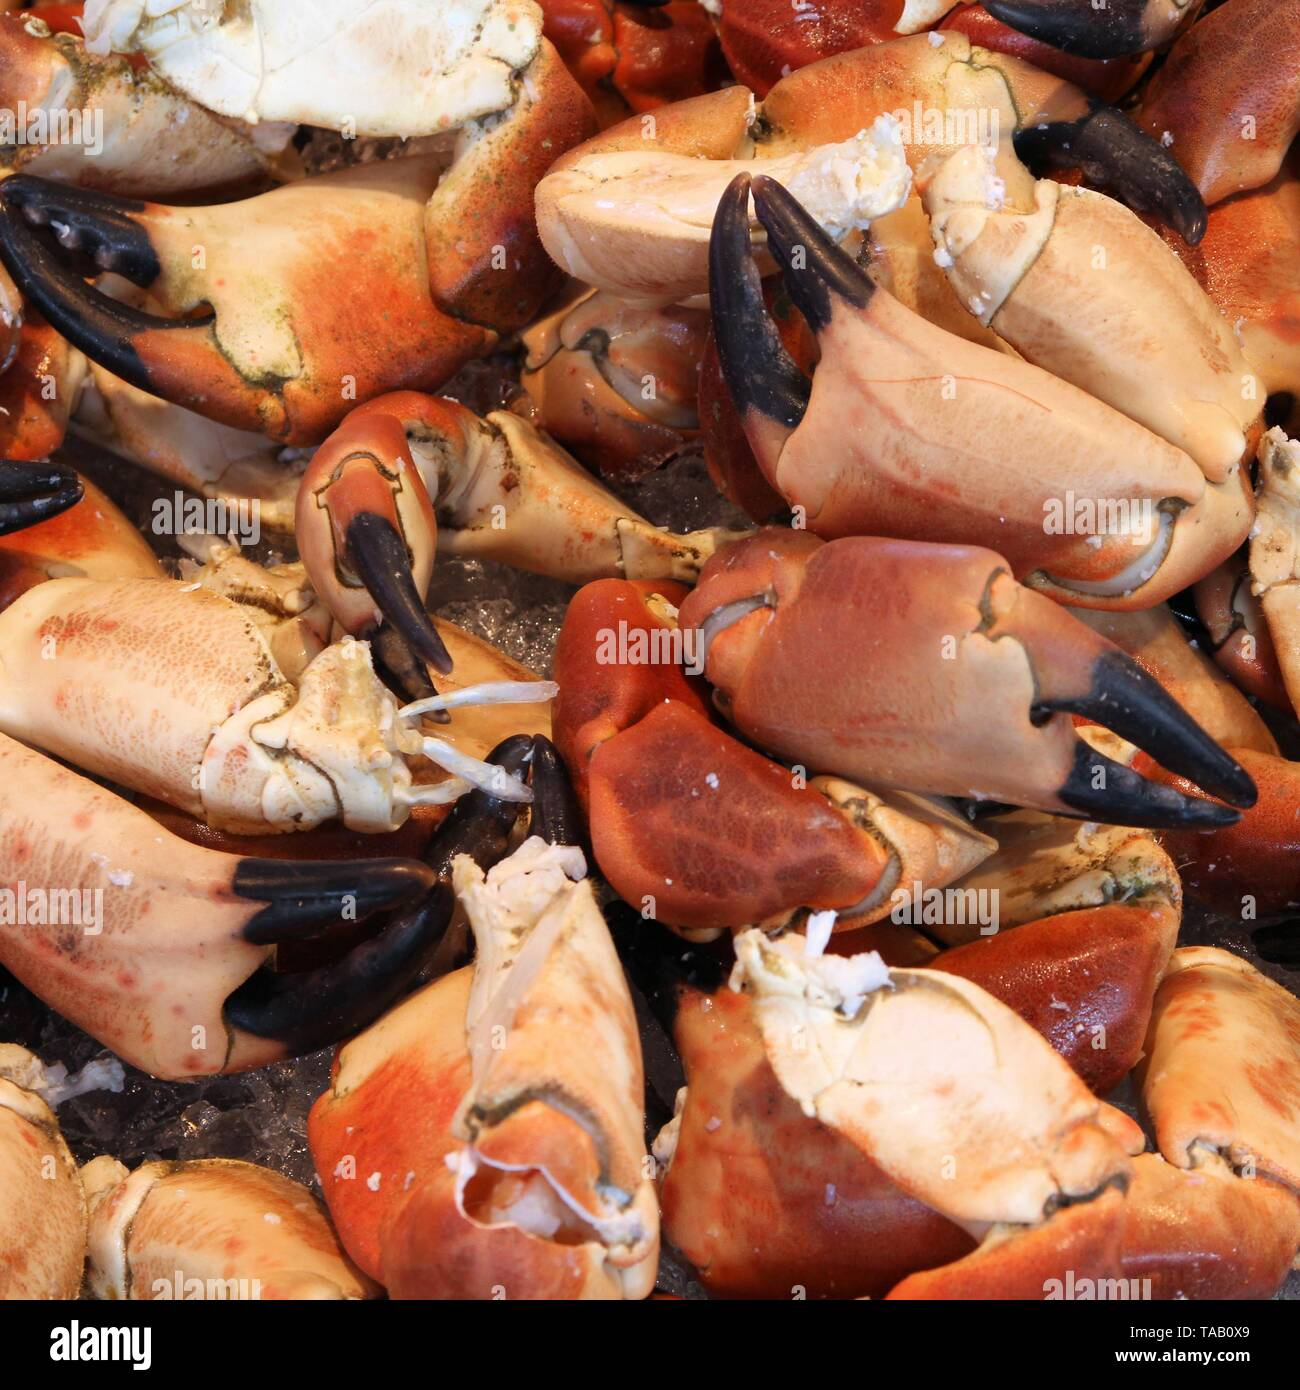 Crabs at famous fish market (Fisketorget) in Bergen, Norway. Square composition. - Stock Image